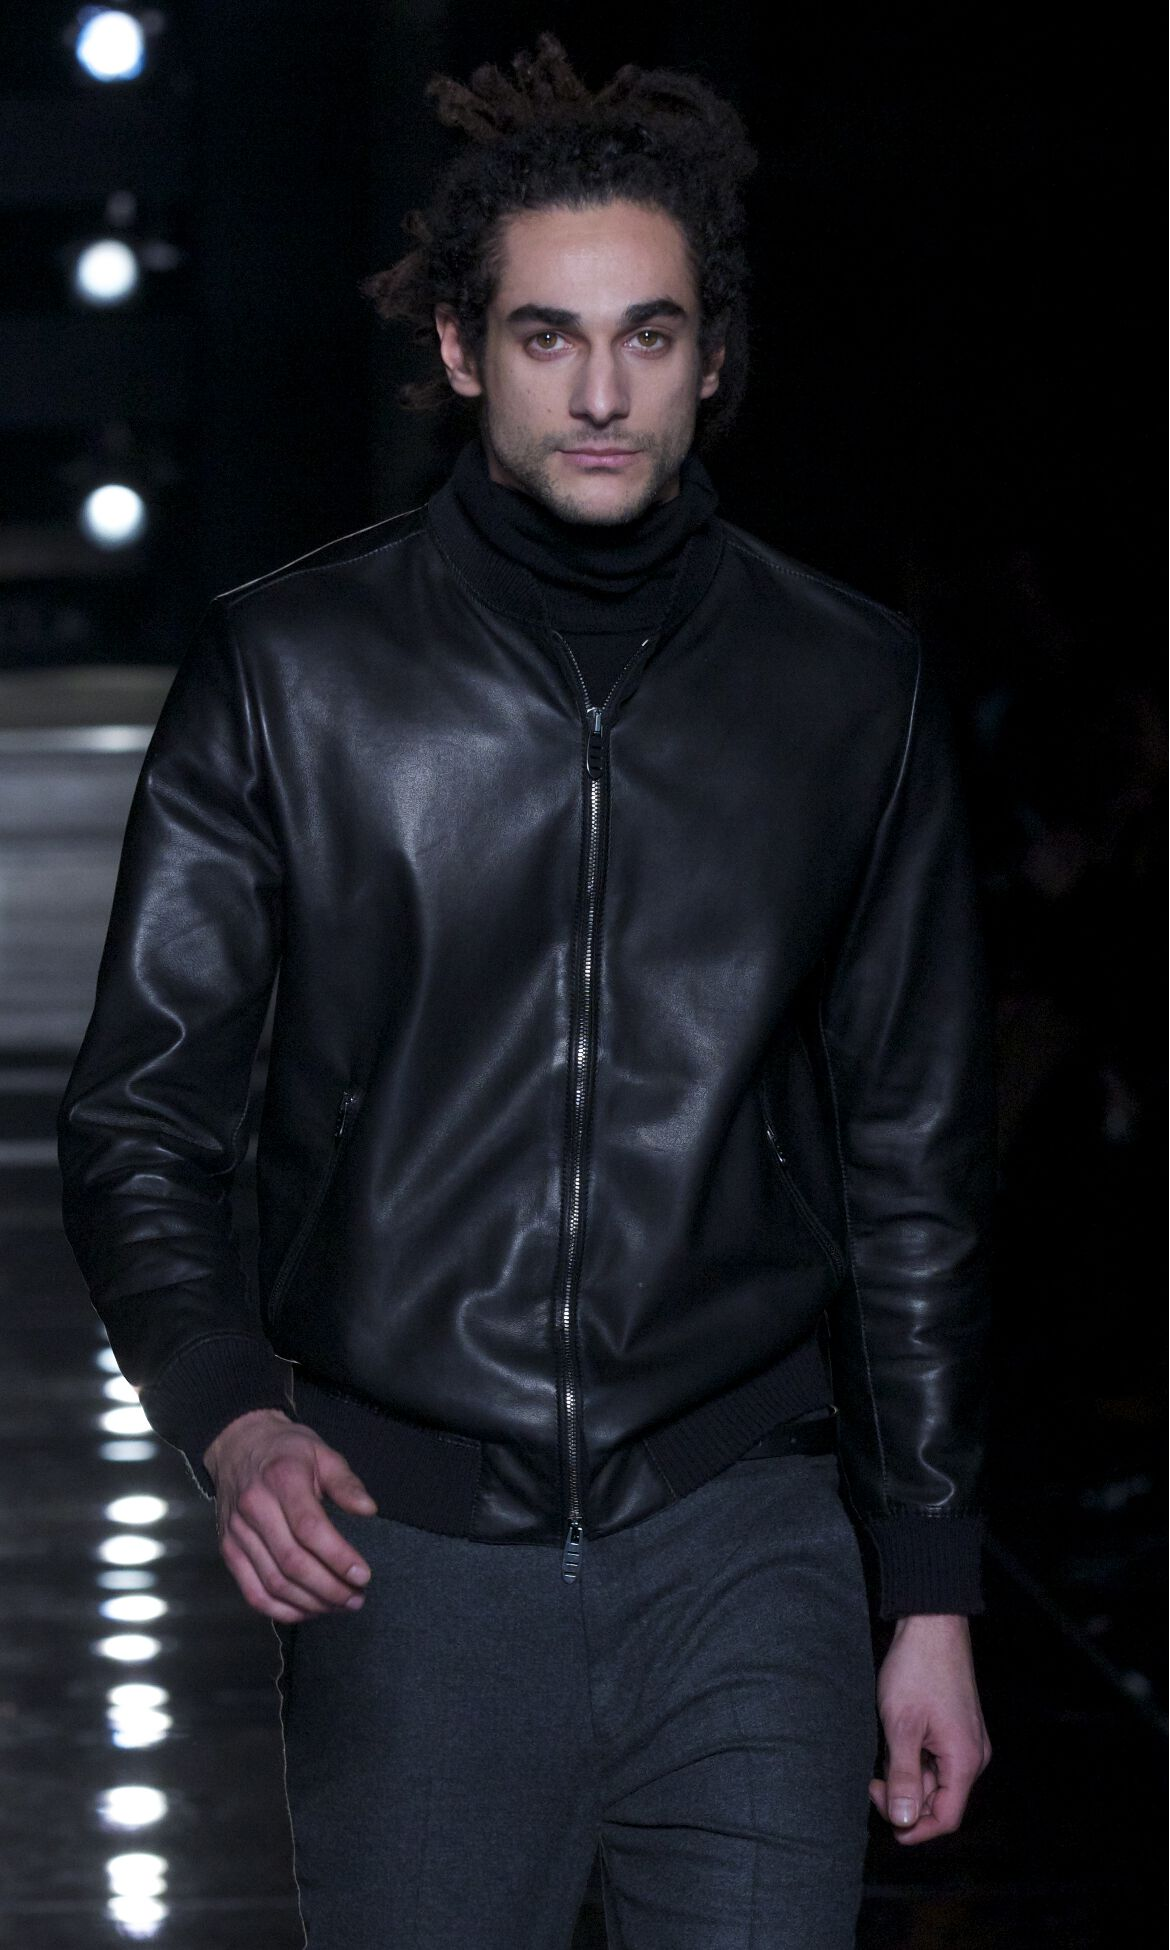 Ermanno Scervino Fashion Man Model